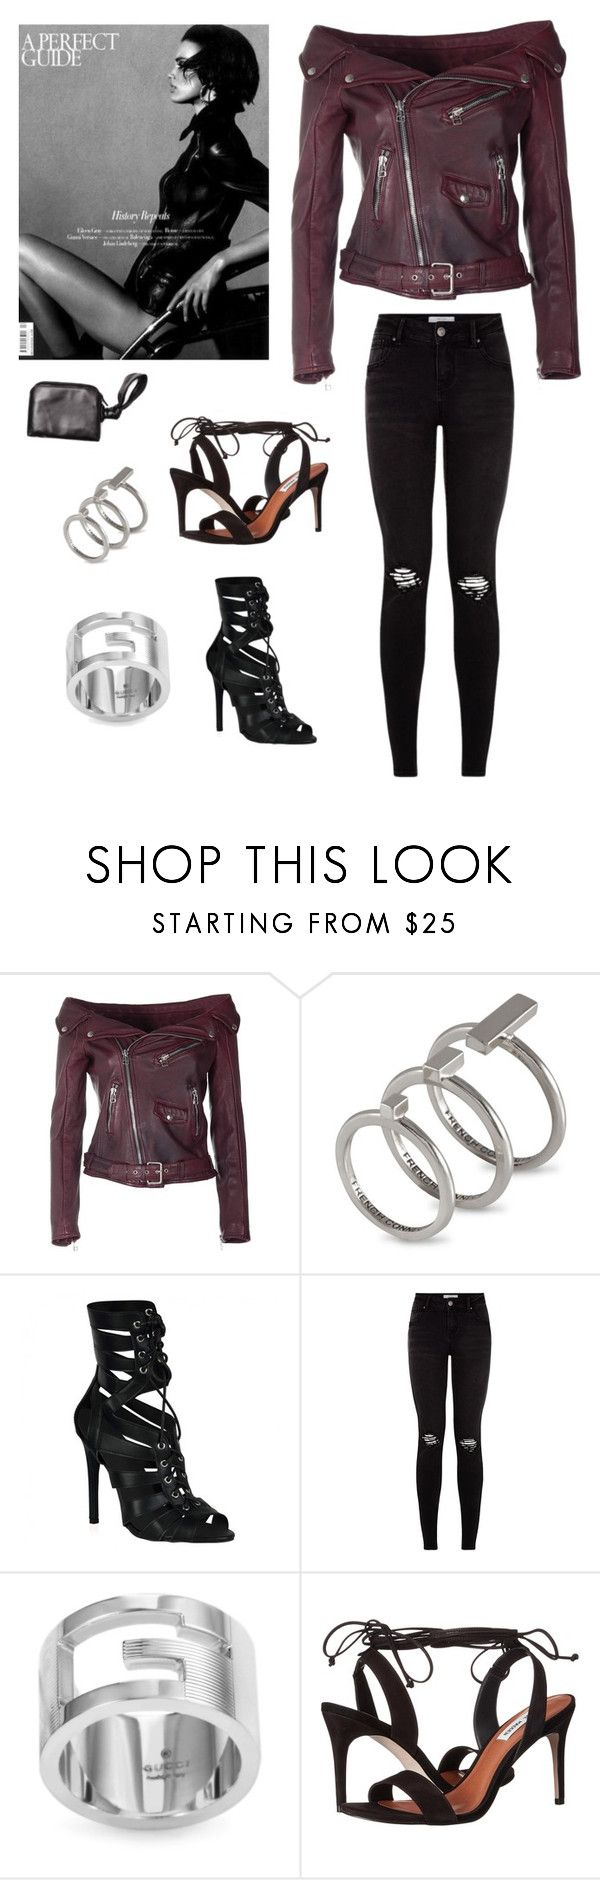 """""""7:10"""" by slimtrim ❤ liked on Polyvore featuring Faith Connexion, French Connection, Gucci, Steve Madden, The Row, black, Leather, autumn, WhatToWear and theturner"""